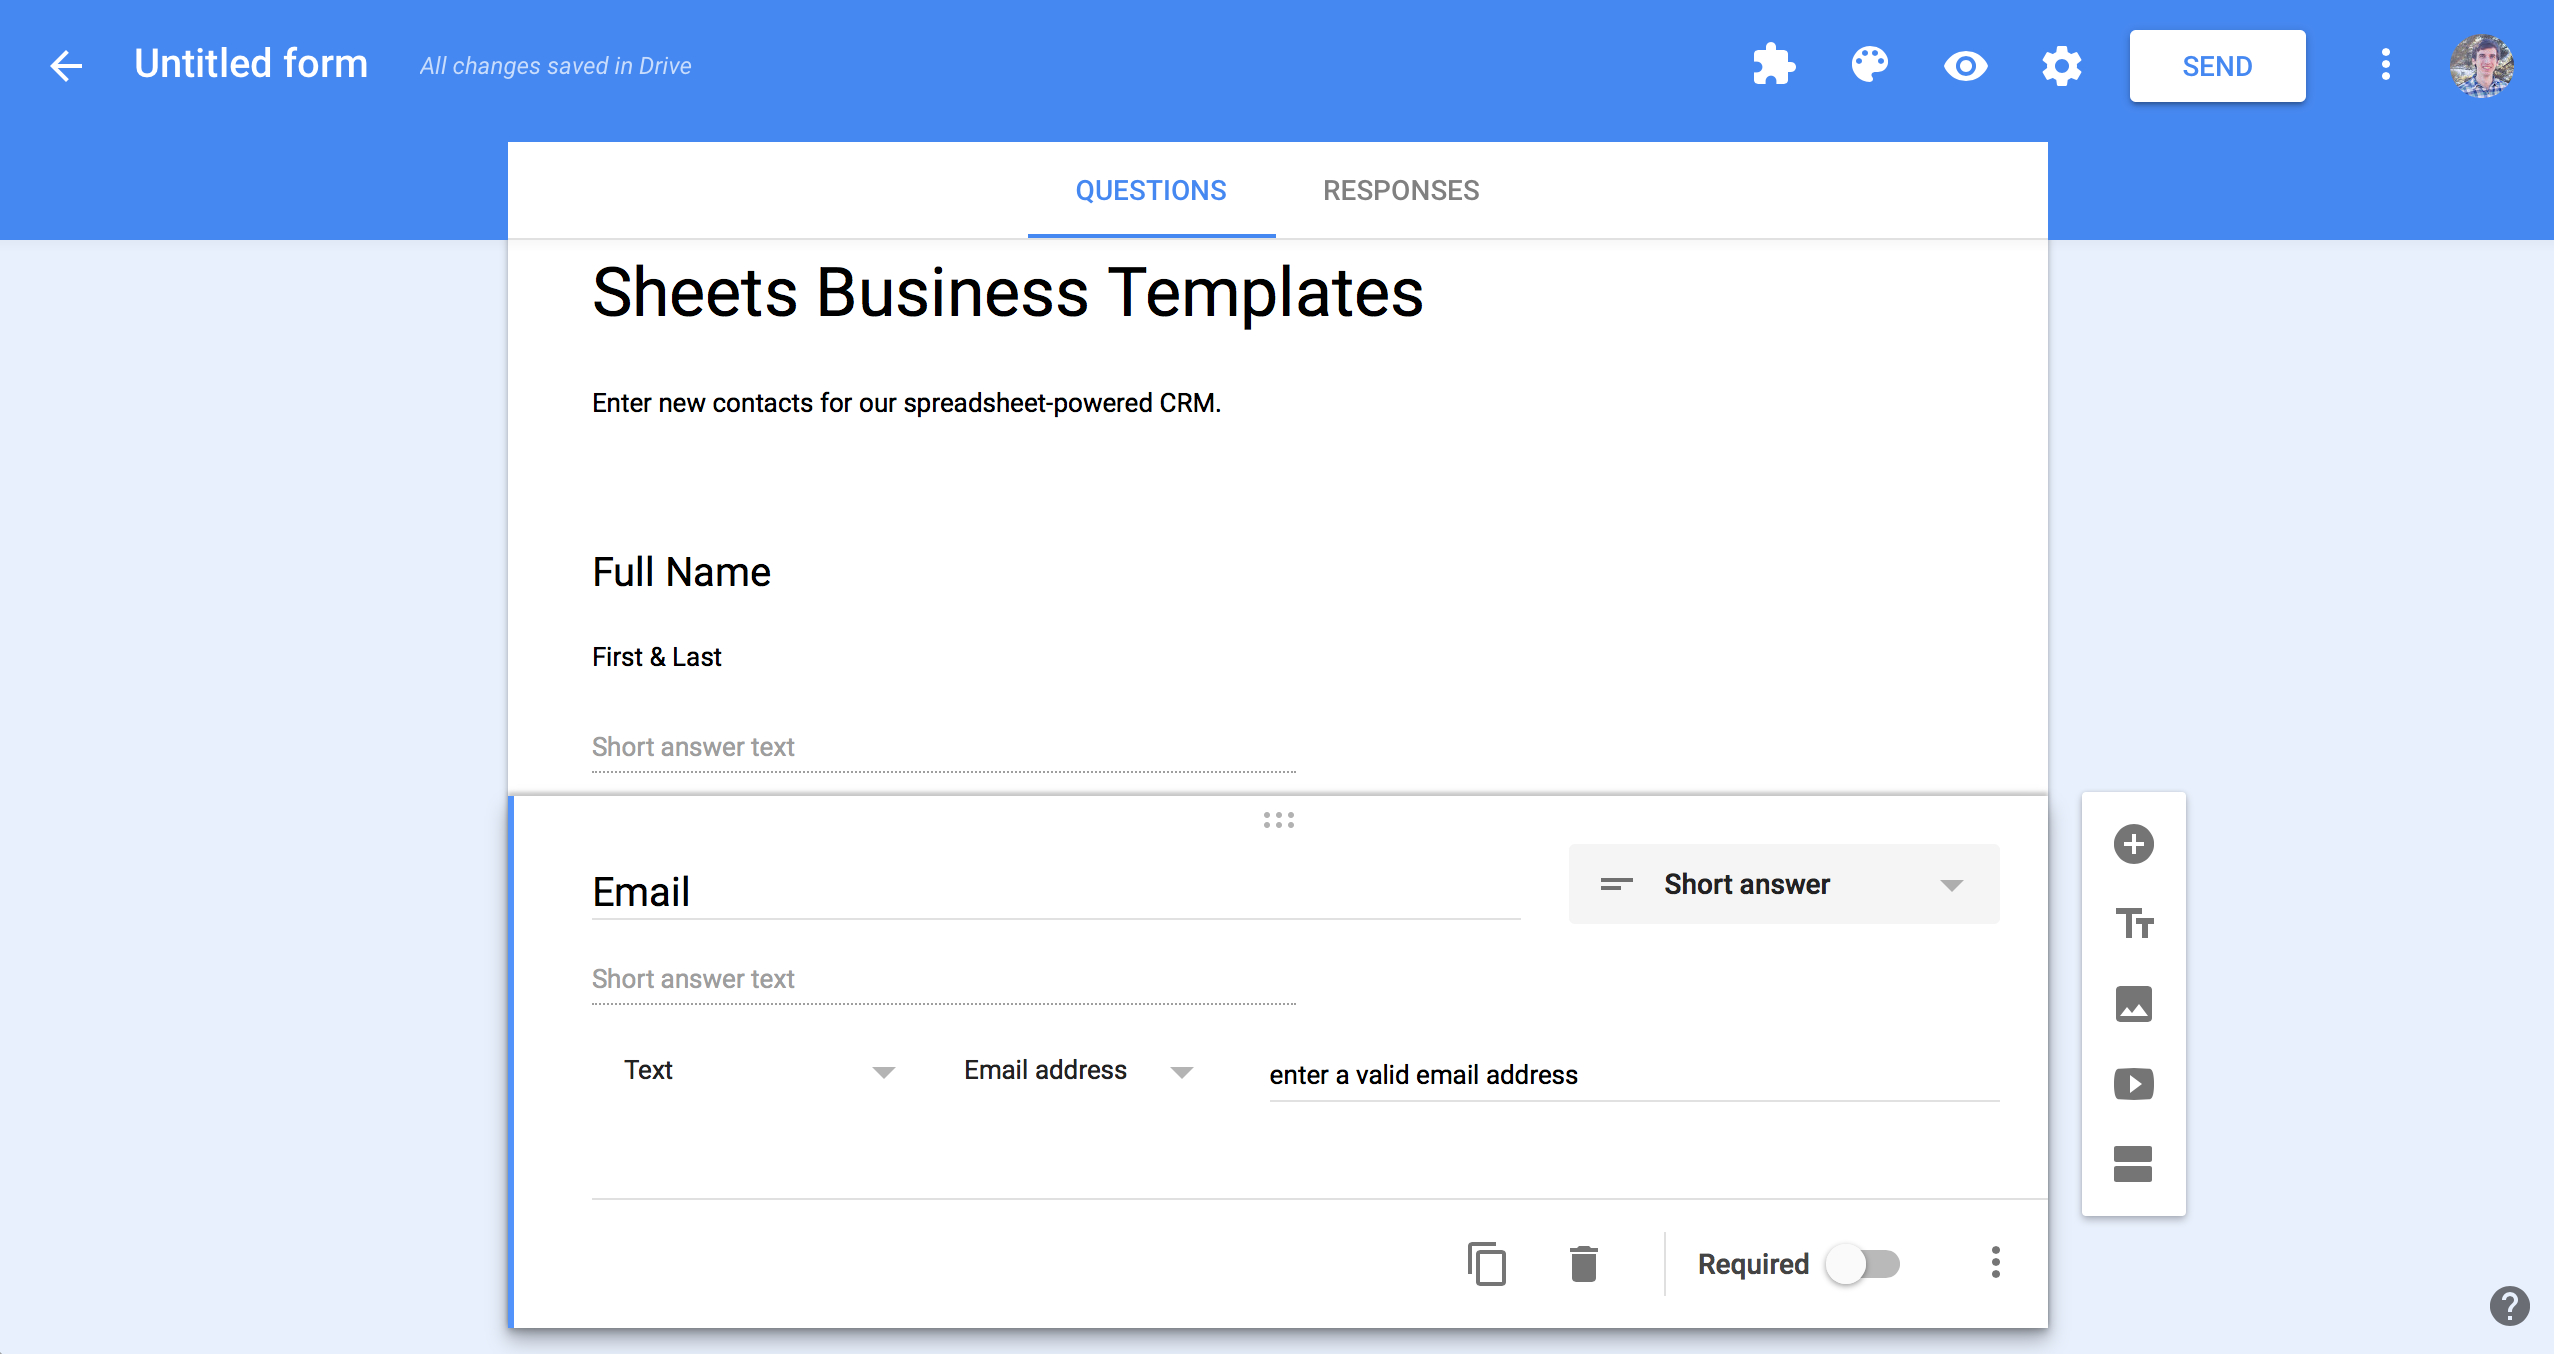 Customer Complaint Tracking Spreadsheet For Spreadsheet Crm: How To Create A Customizable Crm With Google Sheets